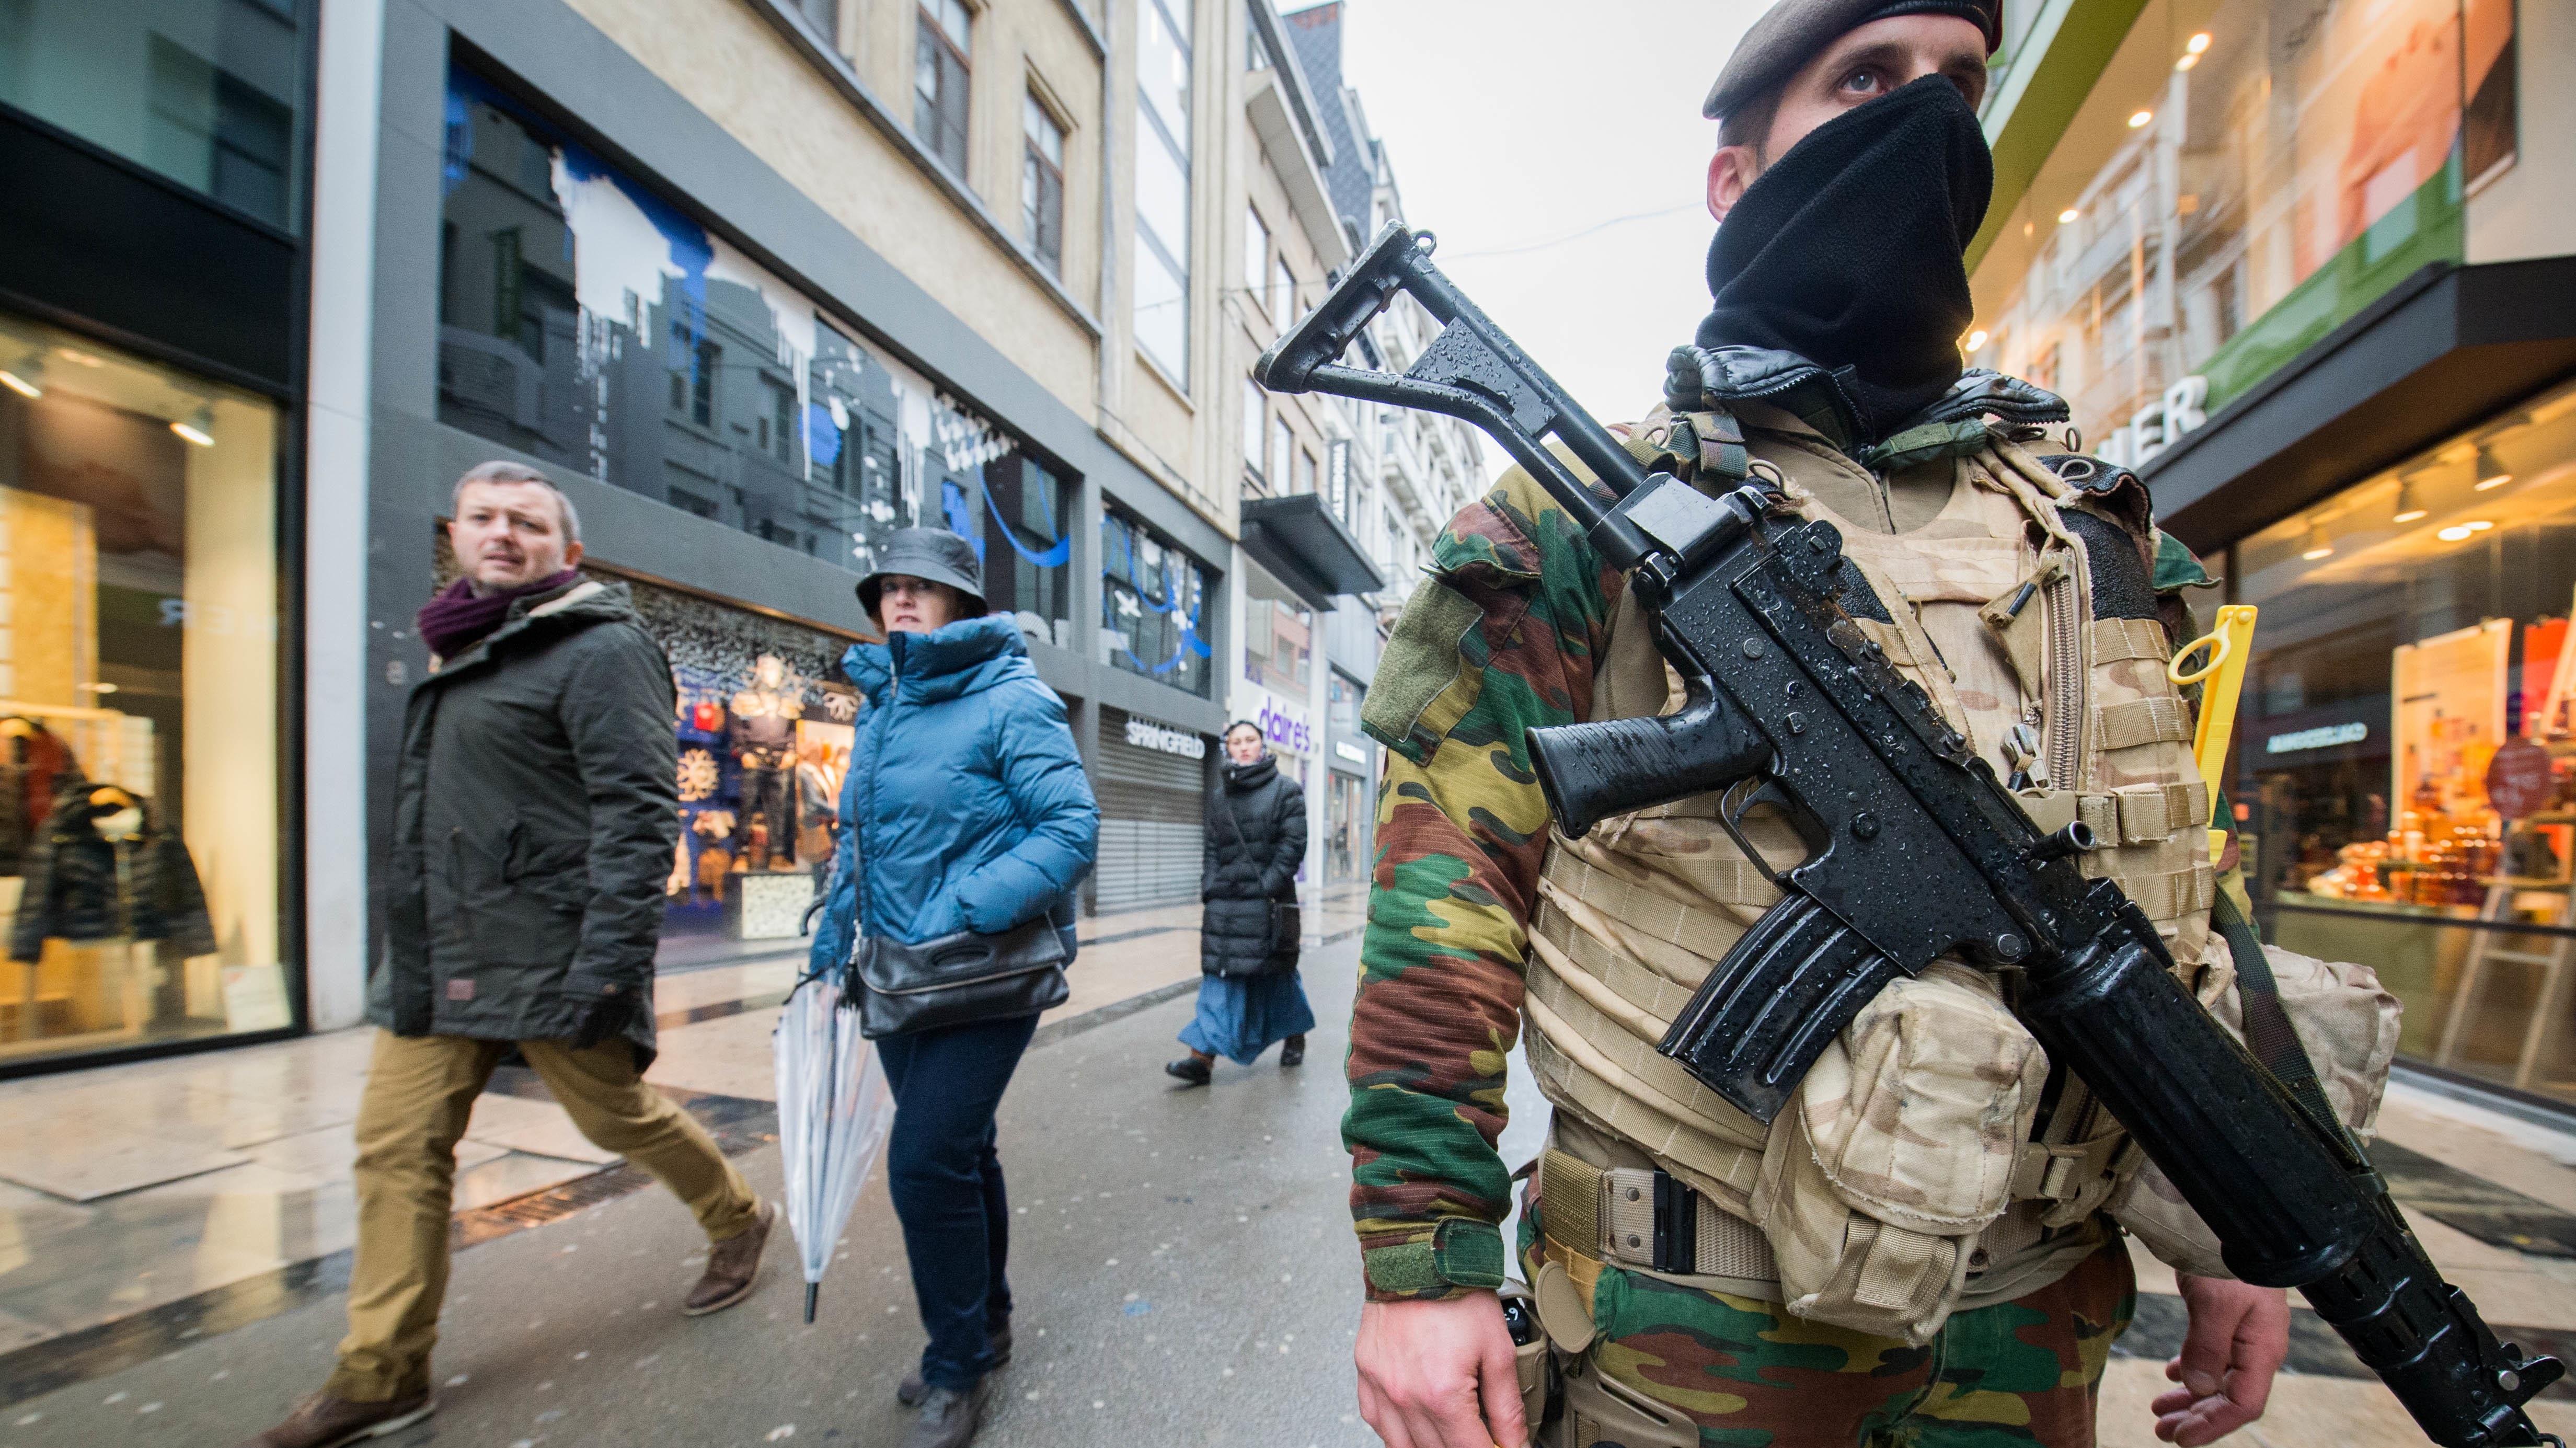 Brussels on Lockdown After 'Serious and Imminent Threat' of Terror Attack